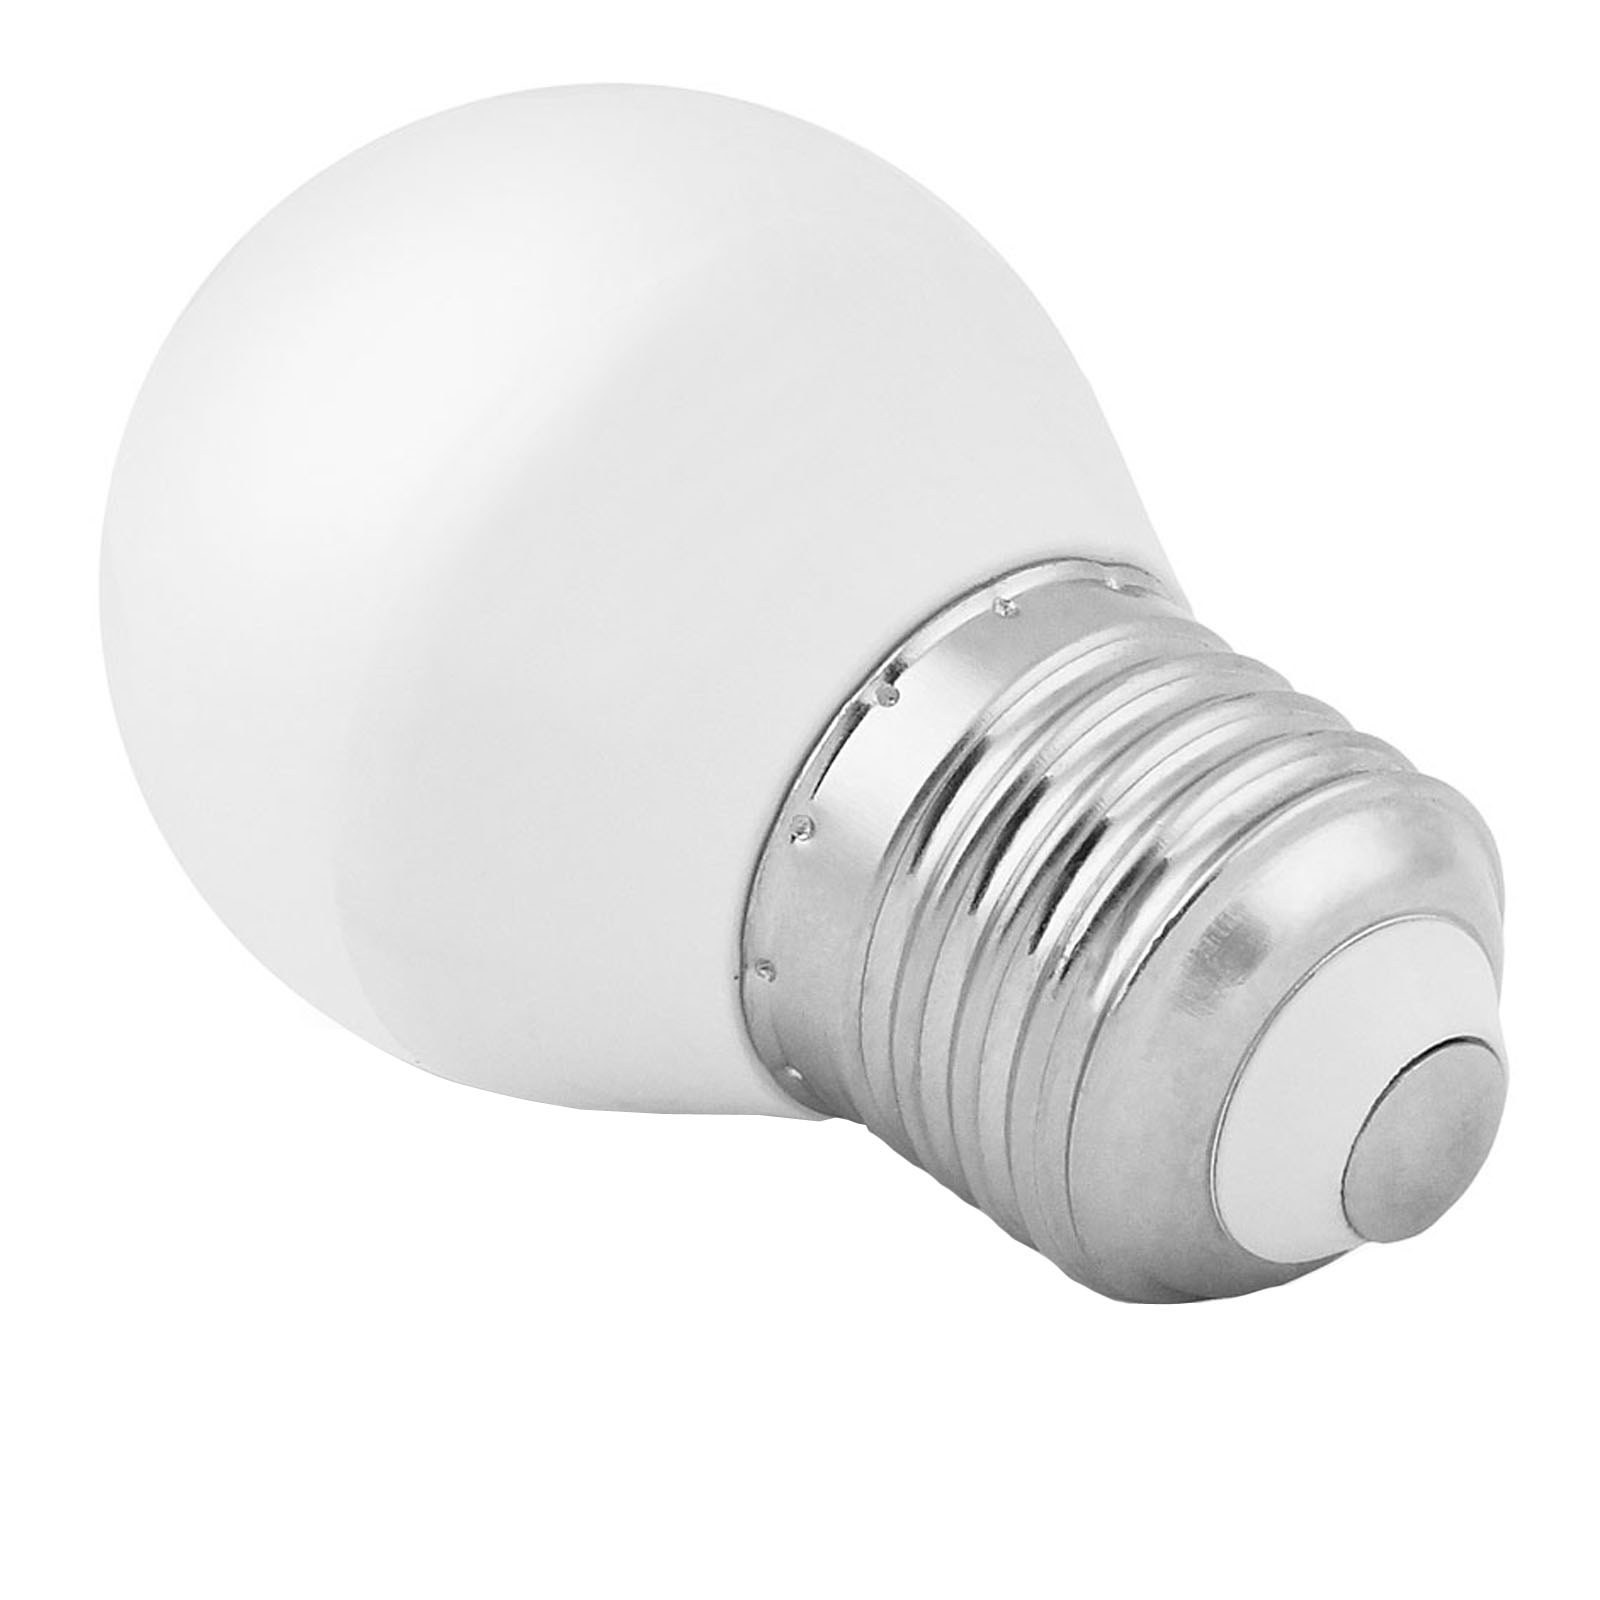 Lampada lampadina led e27 5 5 w watt mini sfera luce for Lampadine led grandi